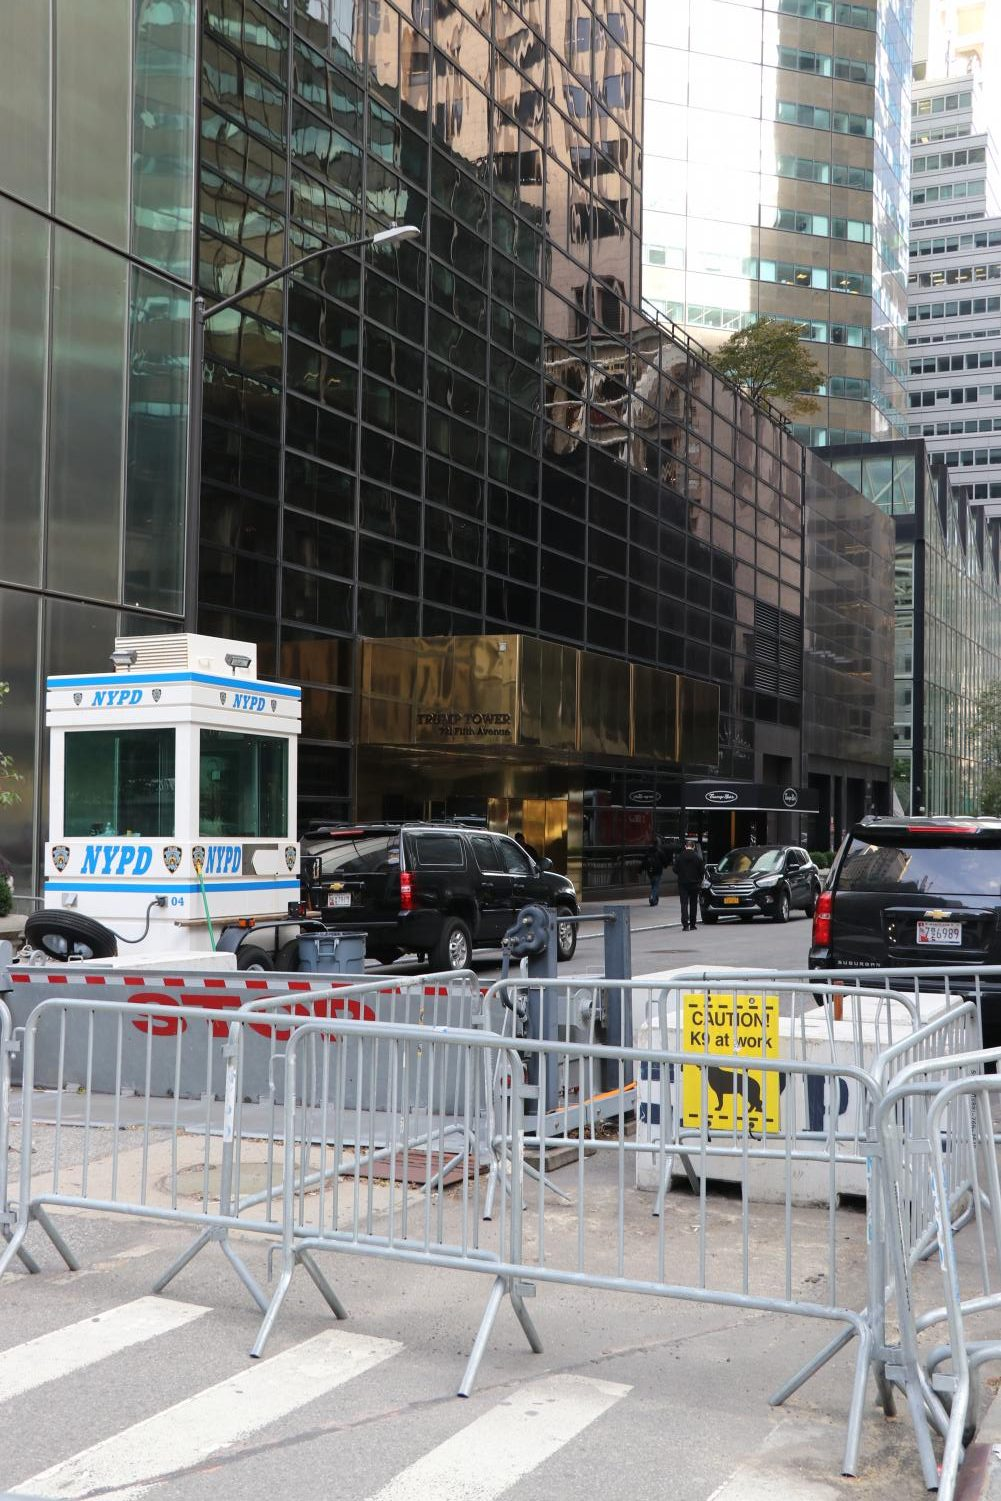 barriers and police cars in front of Trump Tower